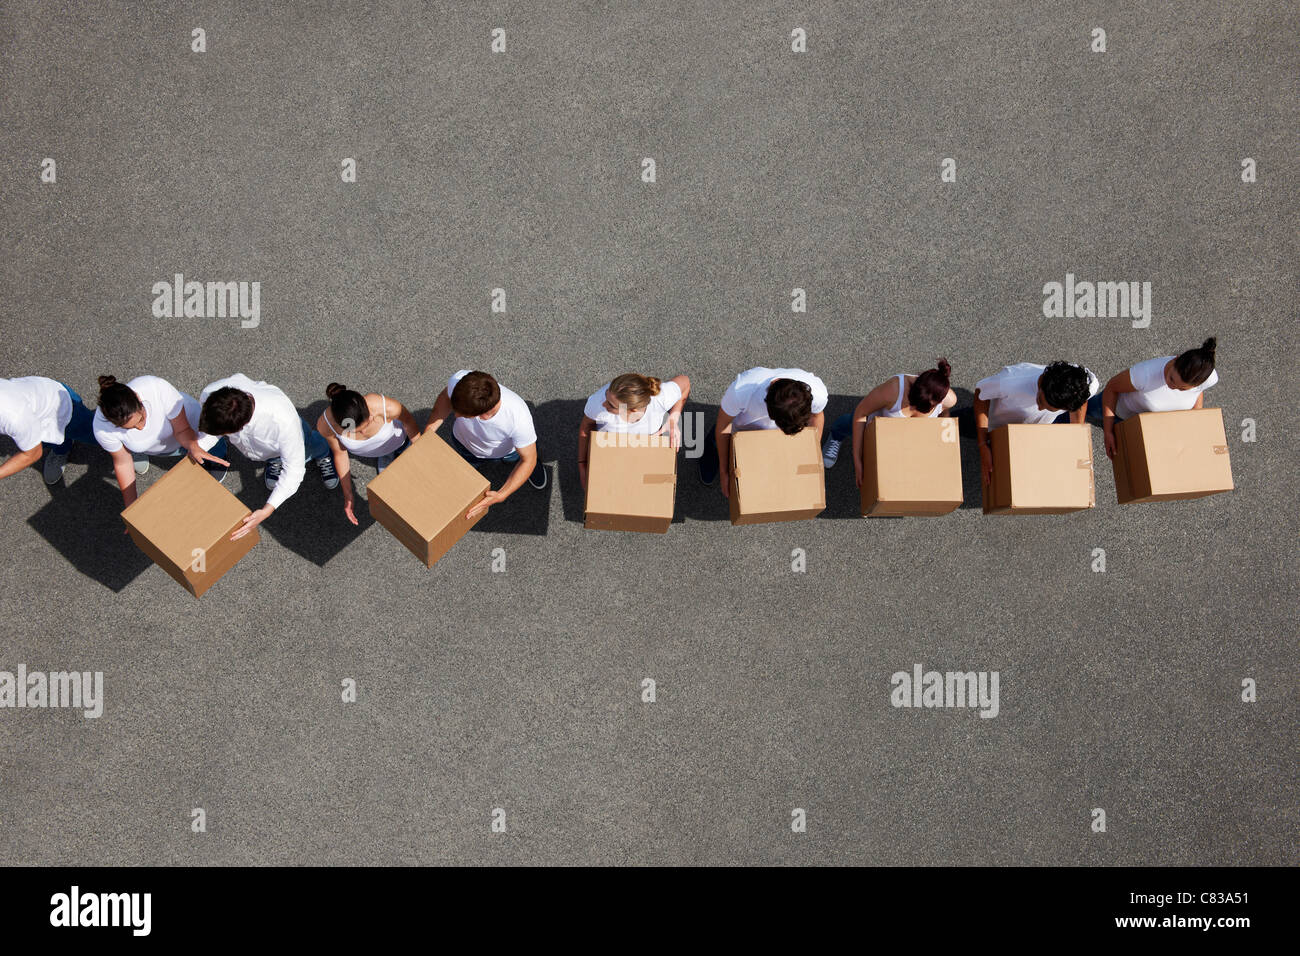 People passing cardboard boxes - Stock Image